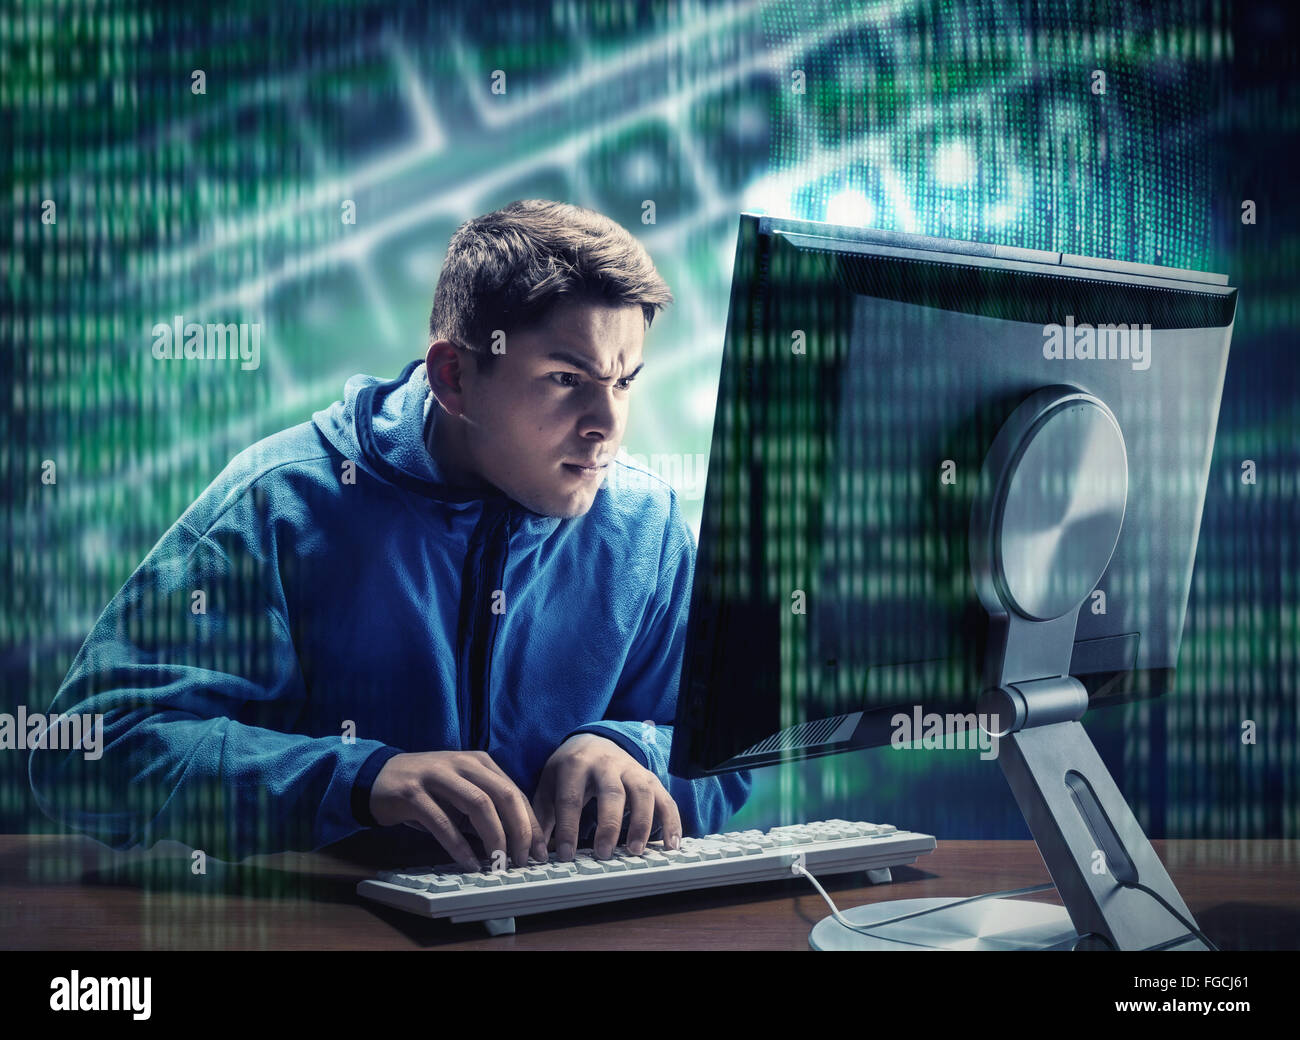 Hacker in the office - Stock Image